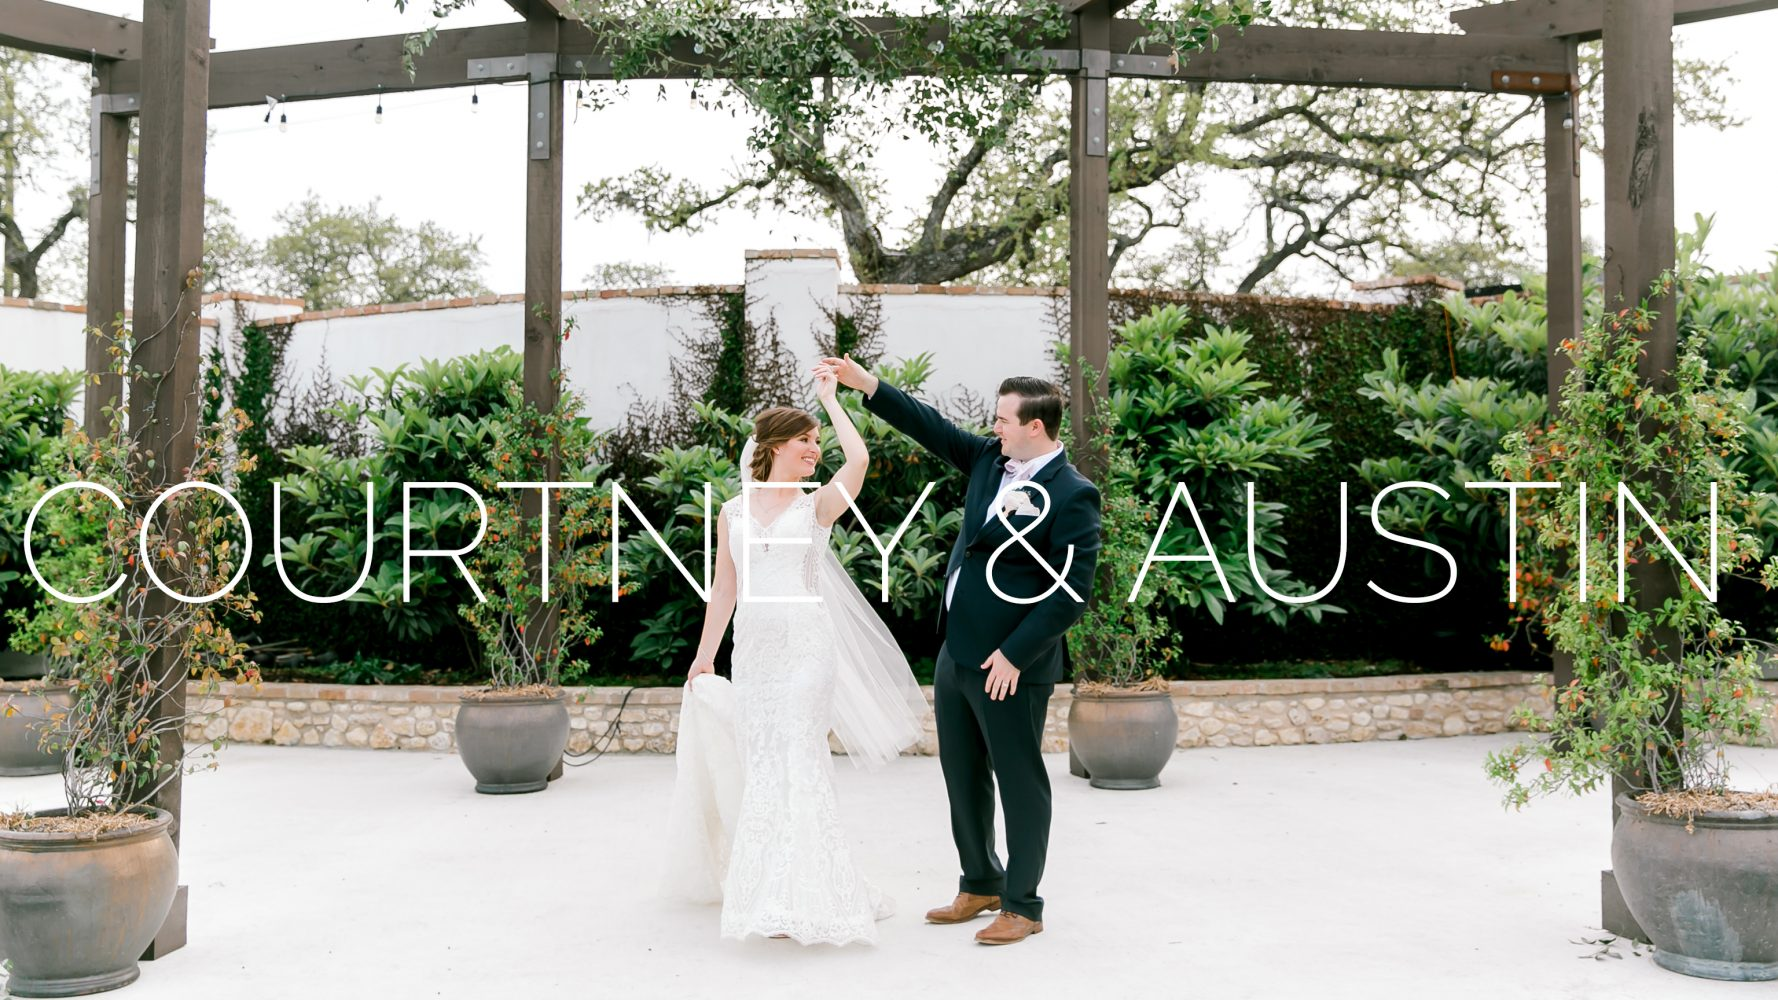 32997Courtney + Austin | Austin, Texas | Garden Grove Wedding and Event Venue